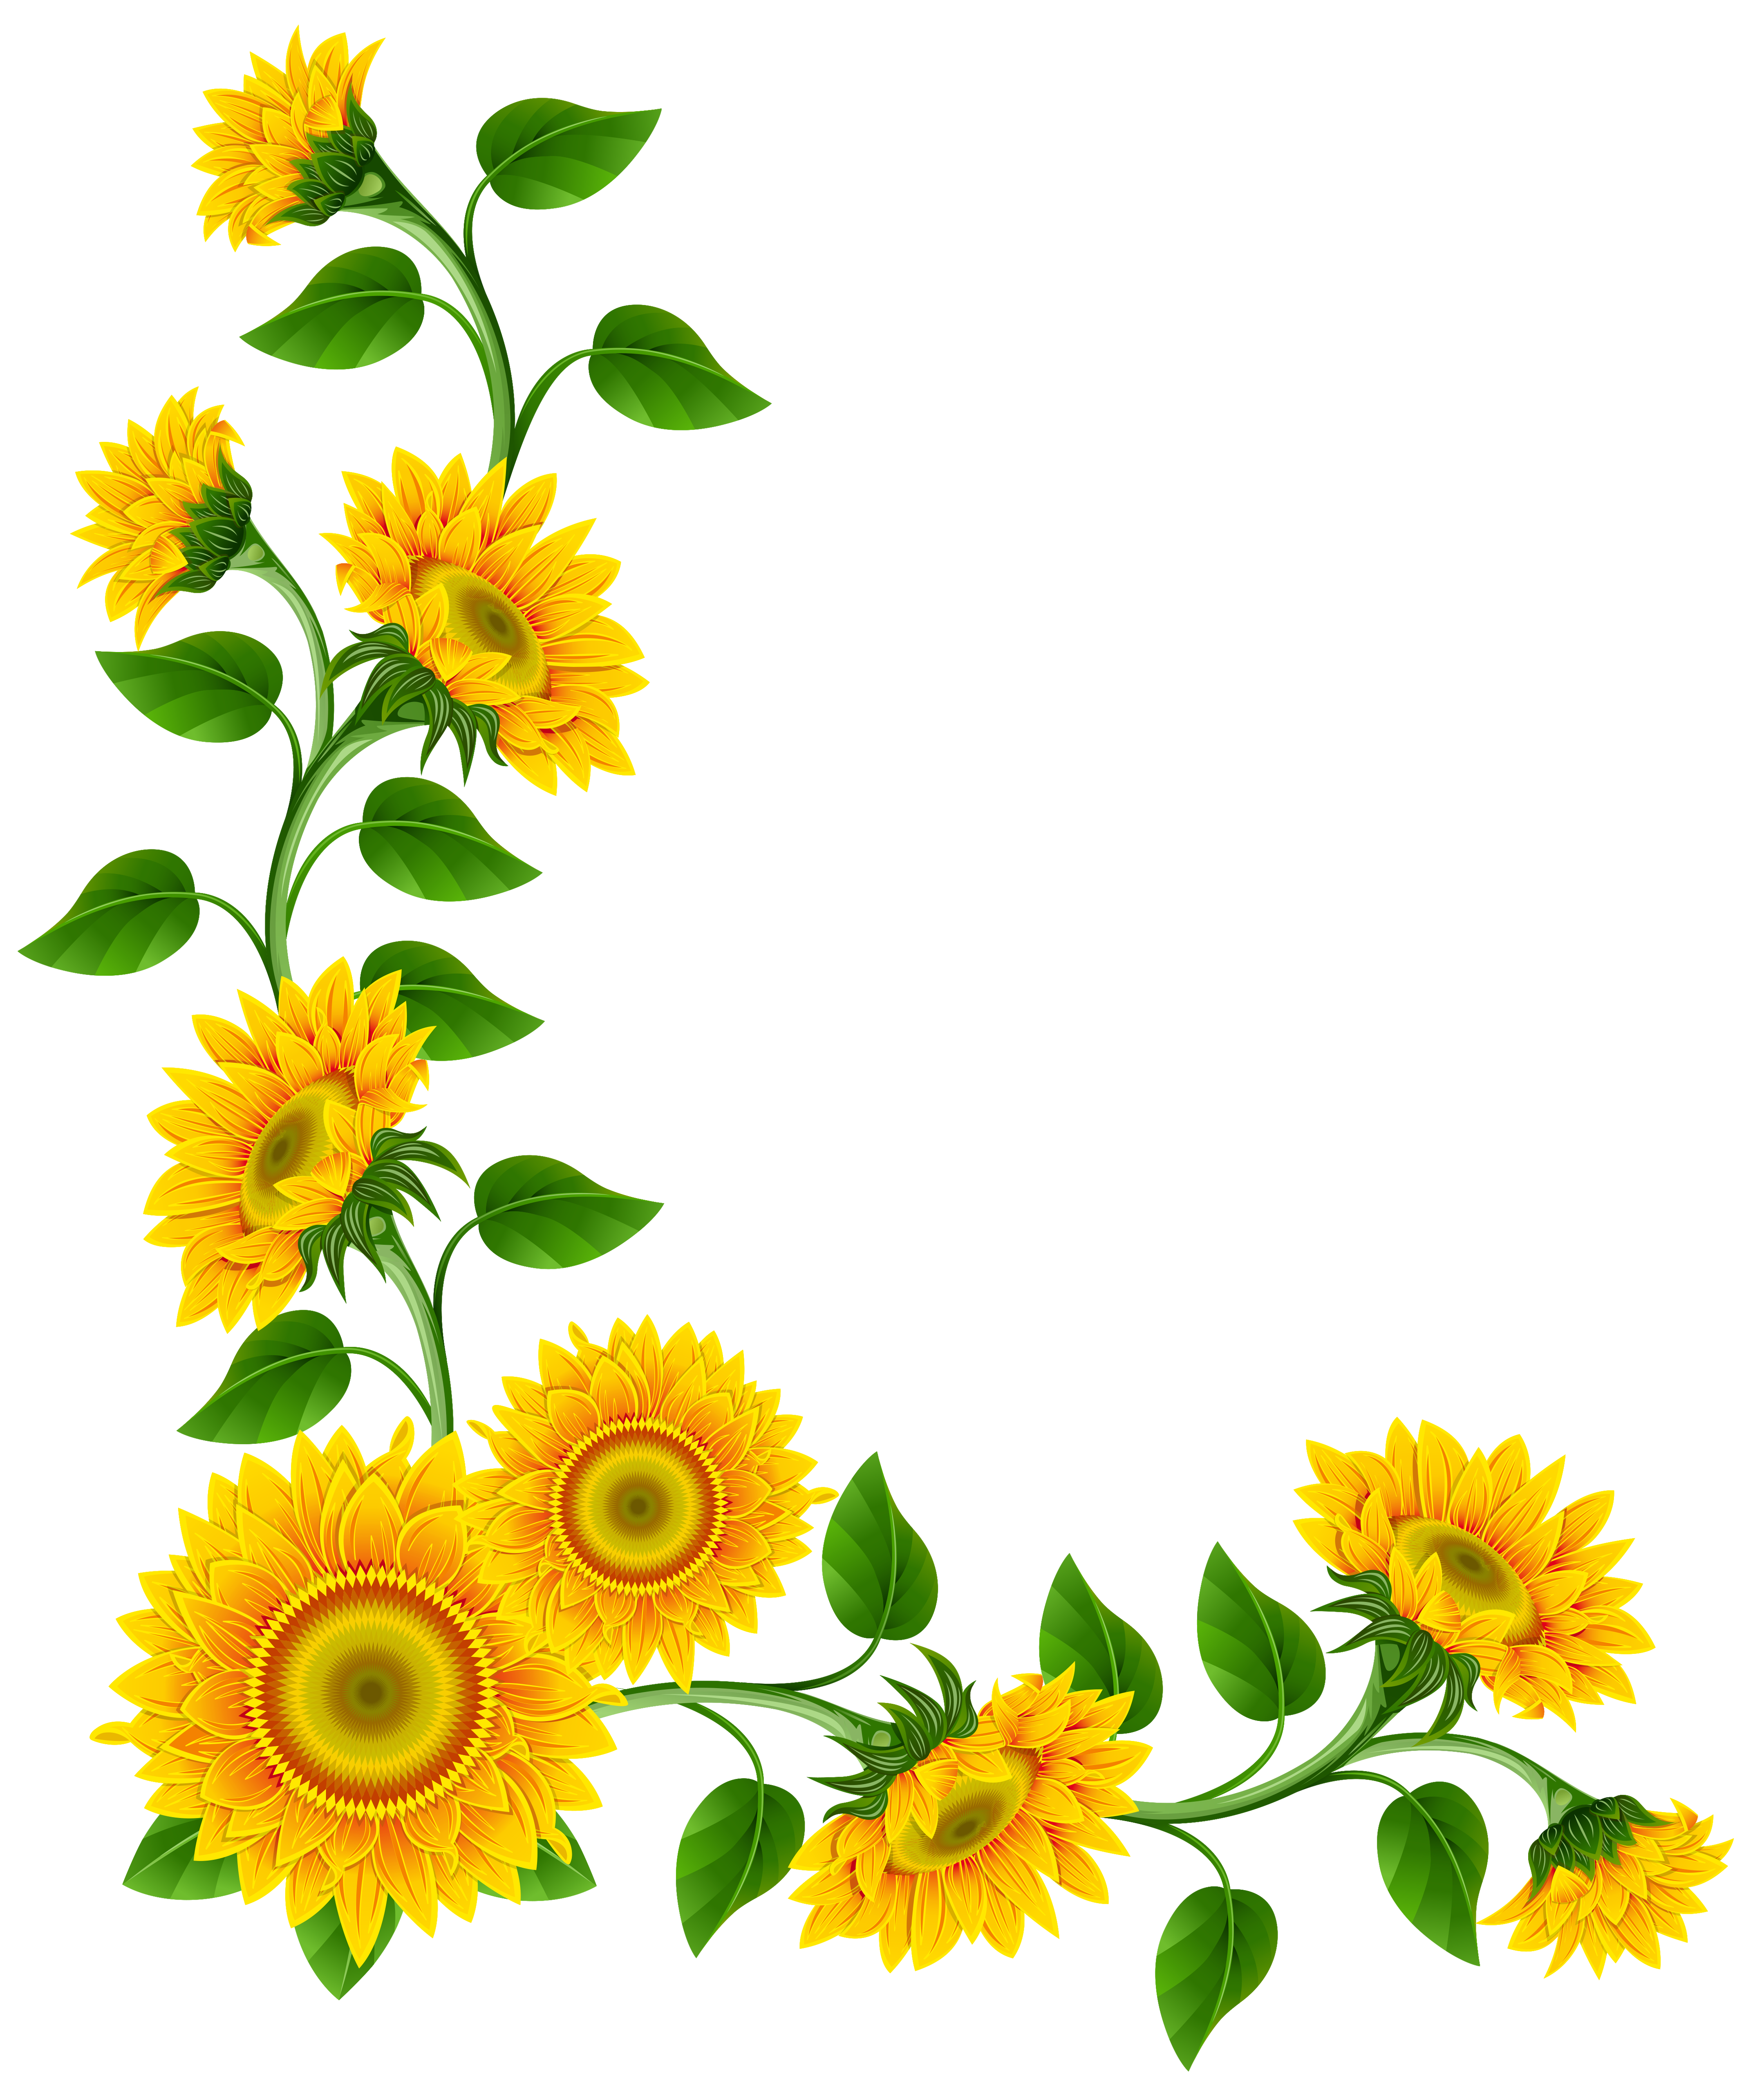 Decoration forward sunflower border decoration png clipart